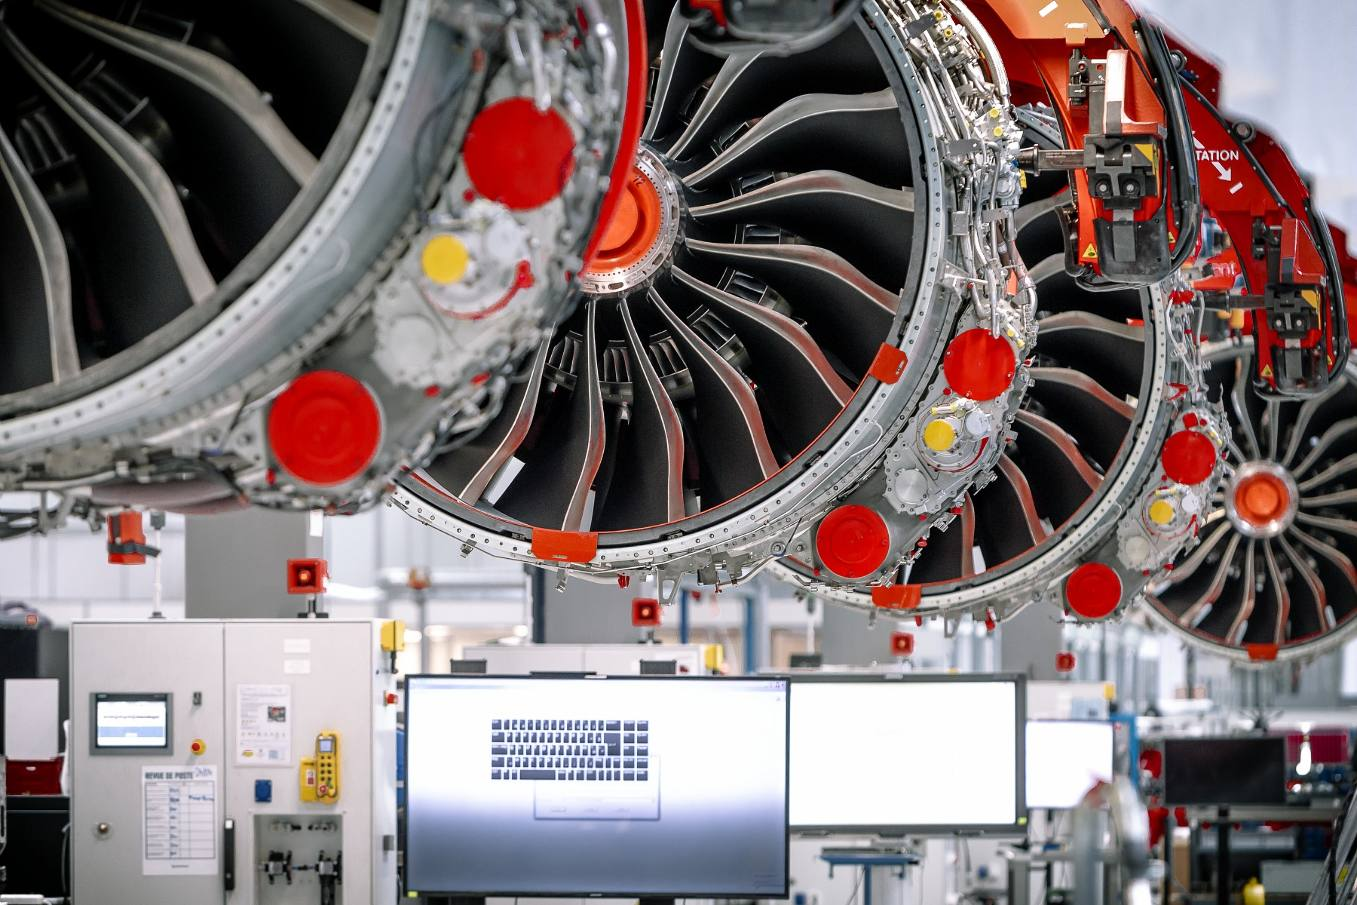 Safran sees strong start to 2019